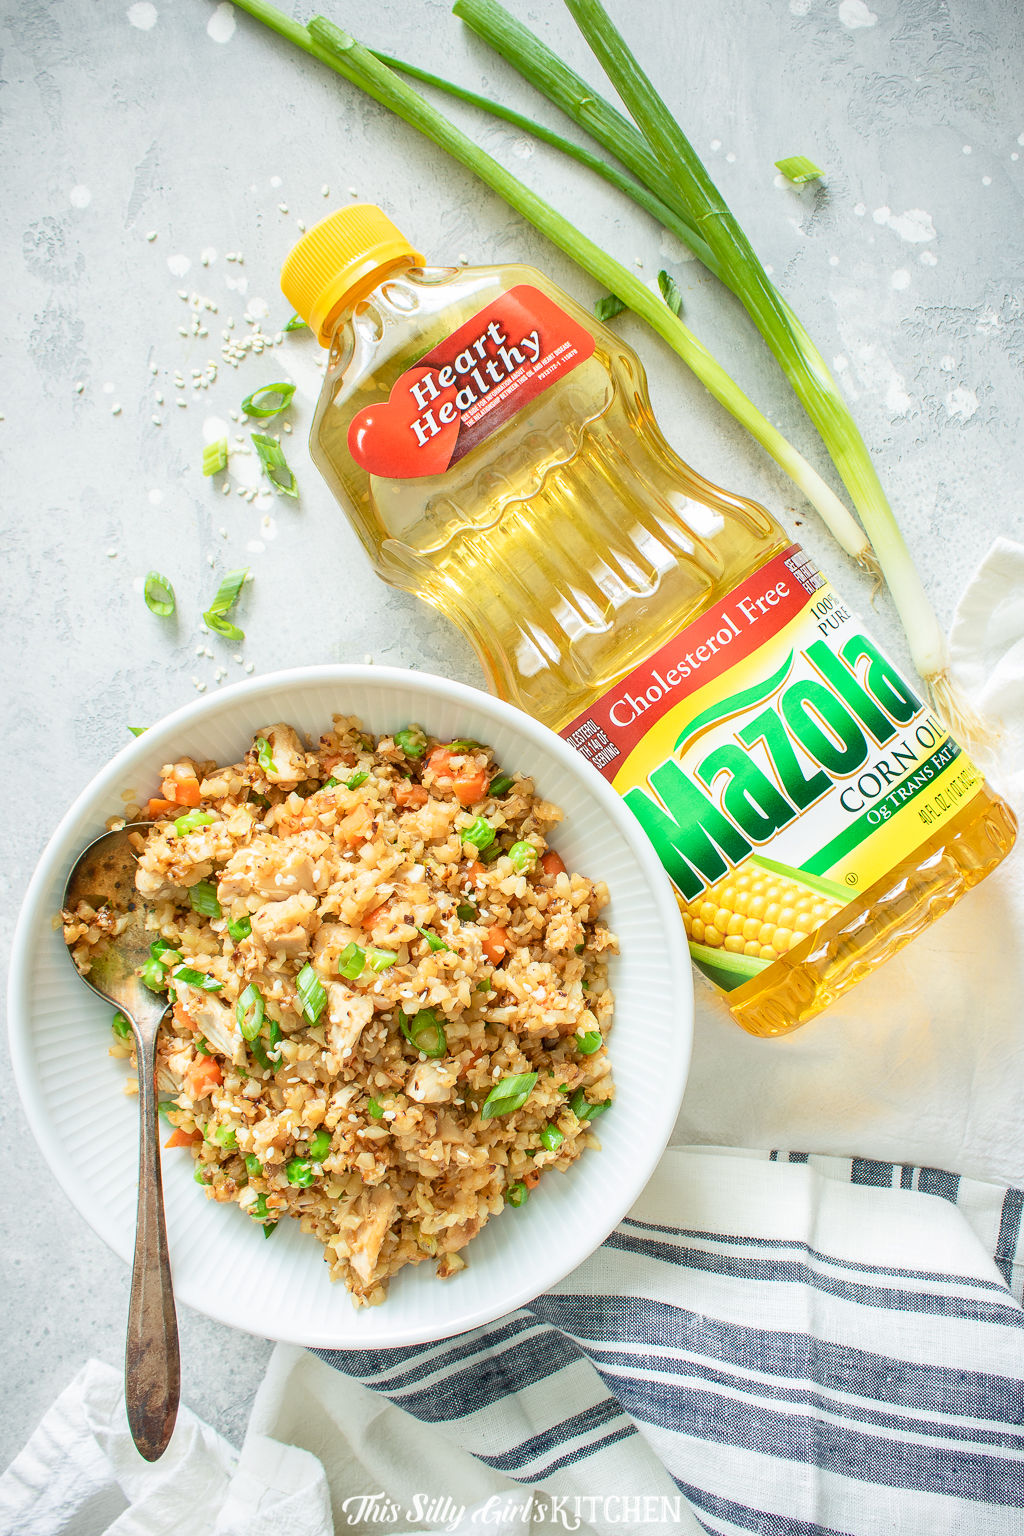 Loaded with veggies and chicken thiscauliflower chicken fried rice is a healthier alternative to classic fried rice. #recipe from thissillygirlskitchen.com #friedrice #chicken #chickenfriedrice #cauliflowerrice